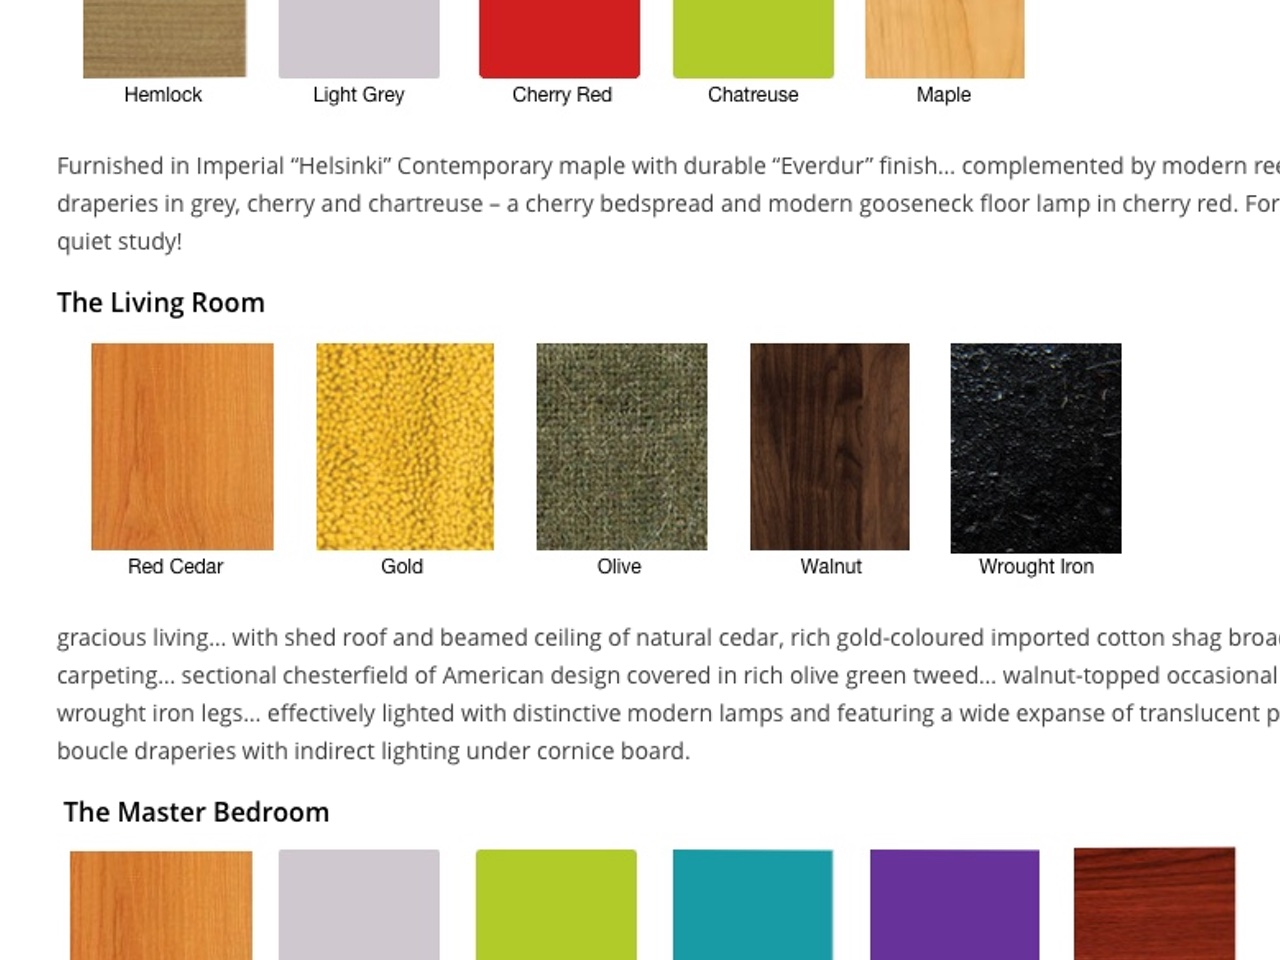 Materials and colours used in the original staging for the Calgary Trend House